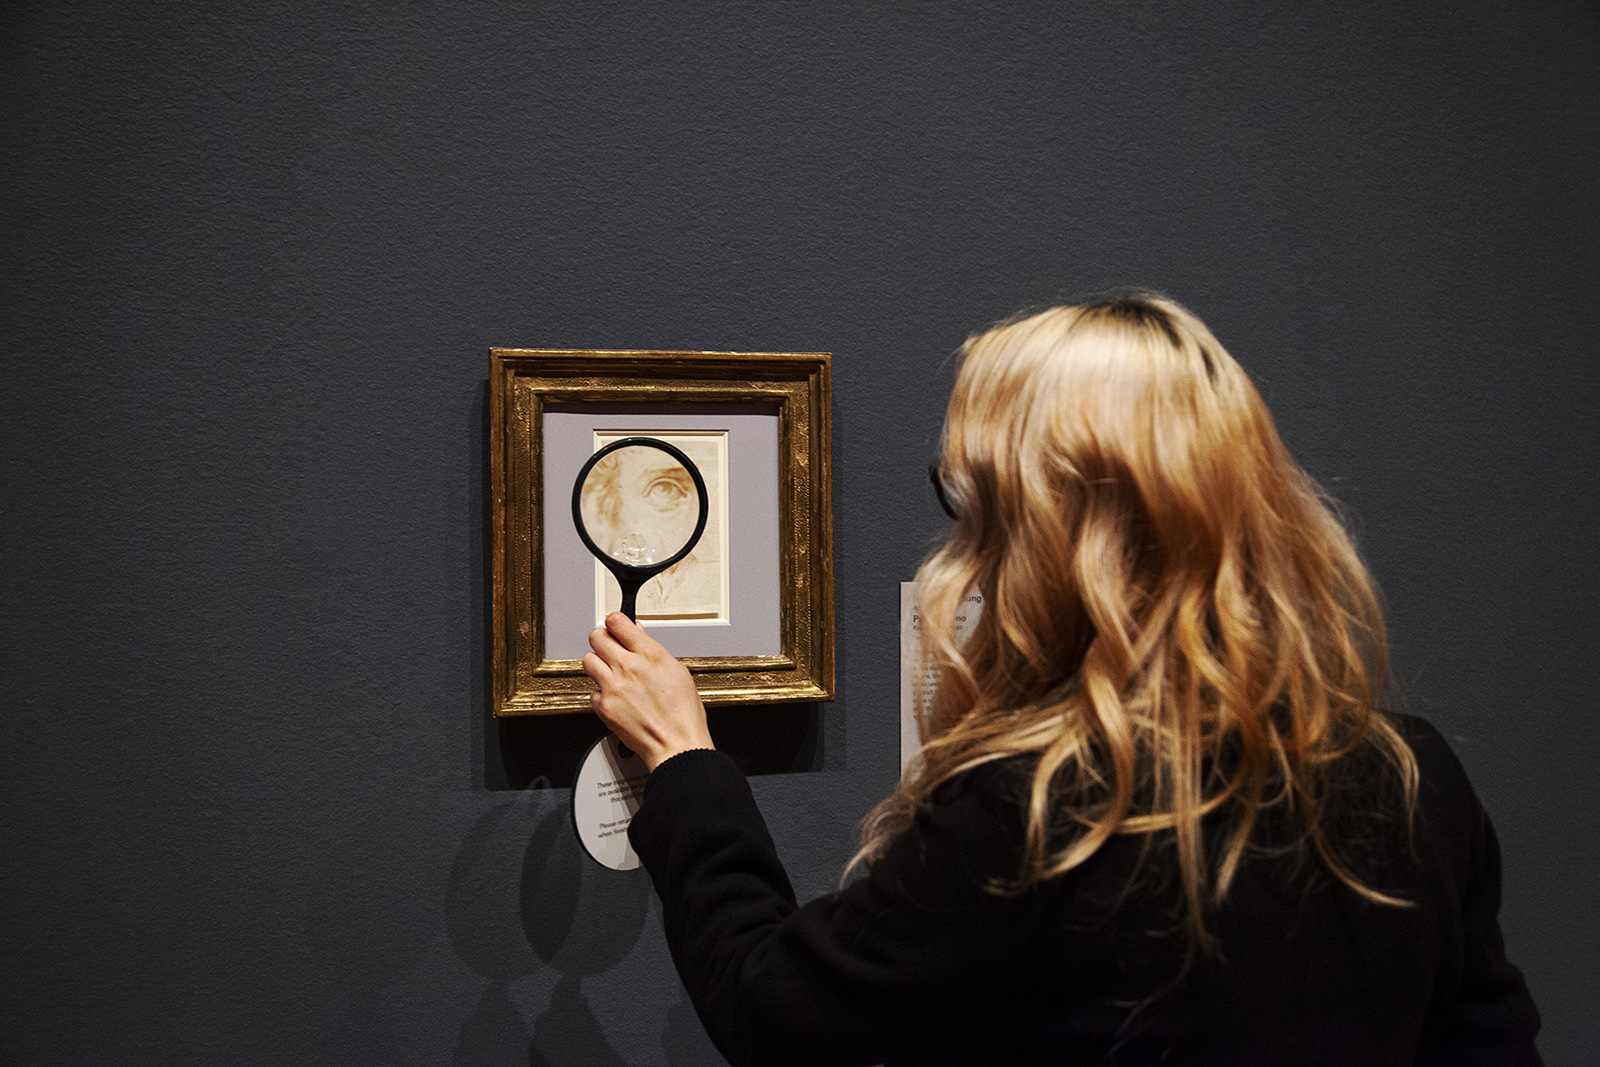 Blond woman holds a magnifying glass to a framed sketch, enlarging an eye.